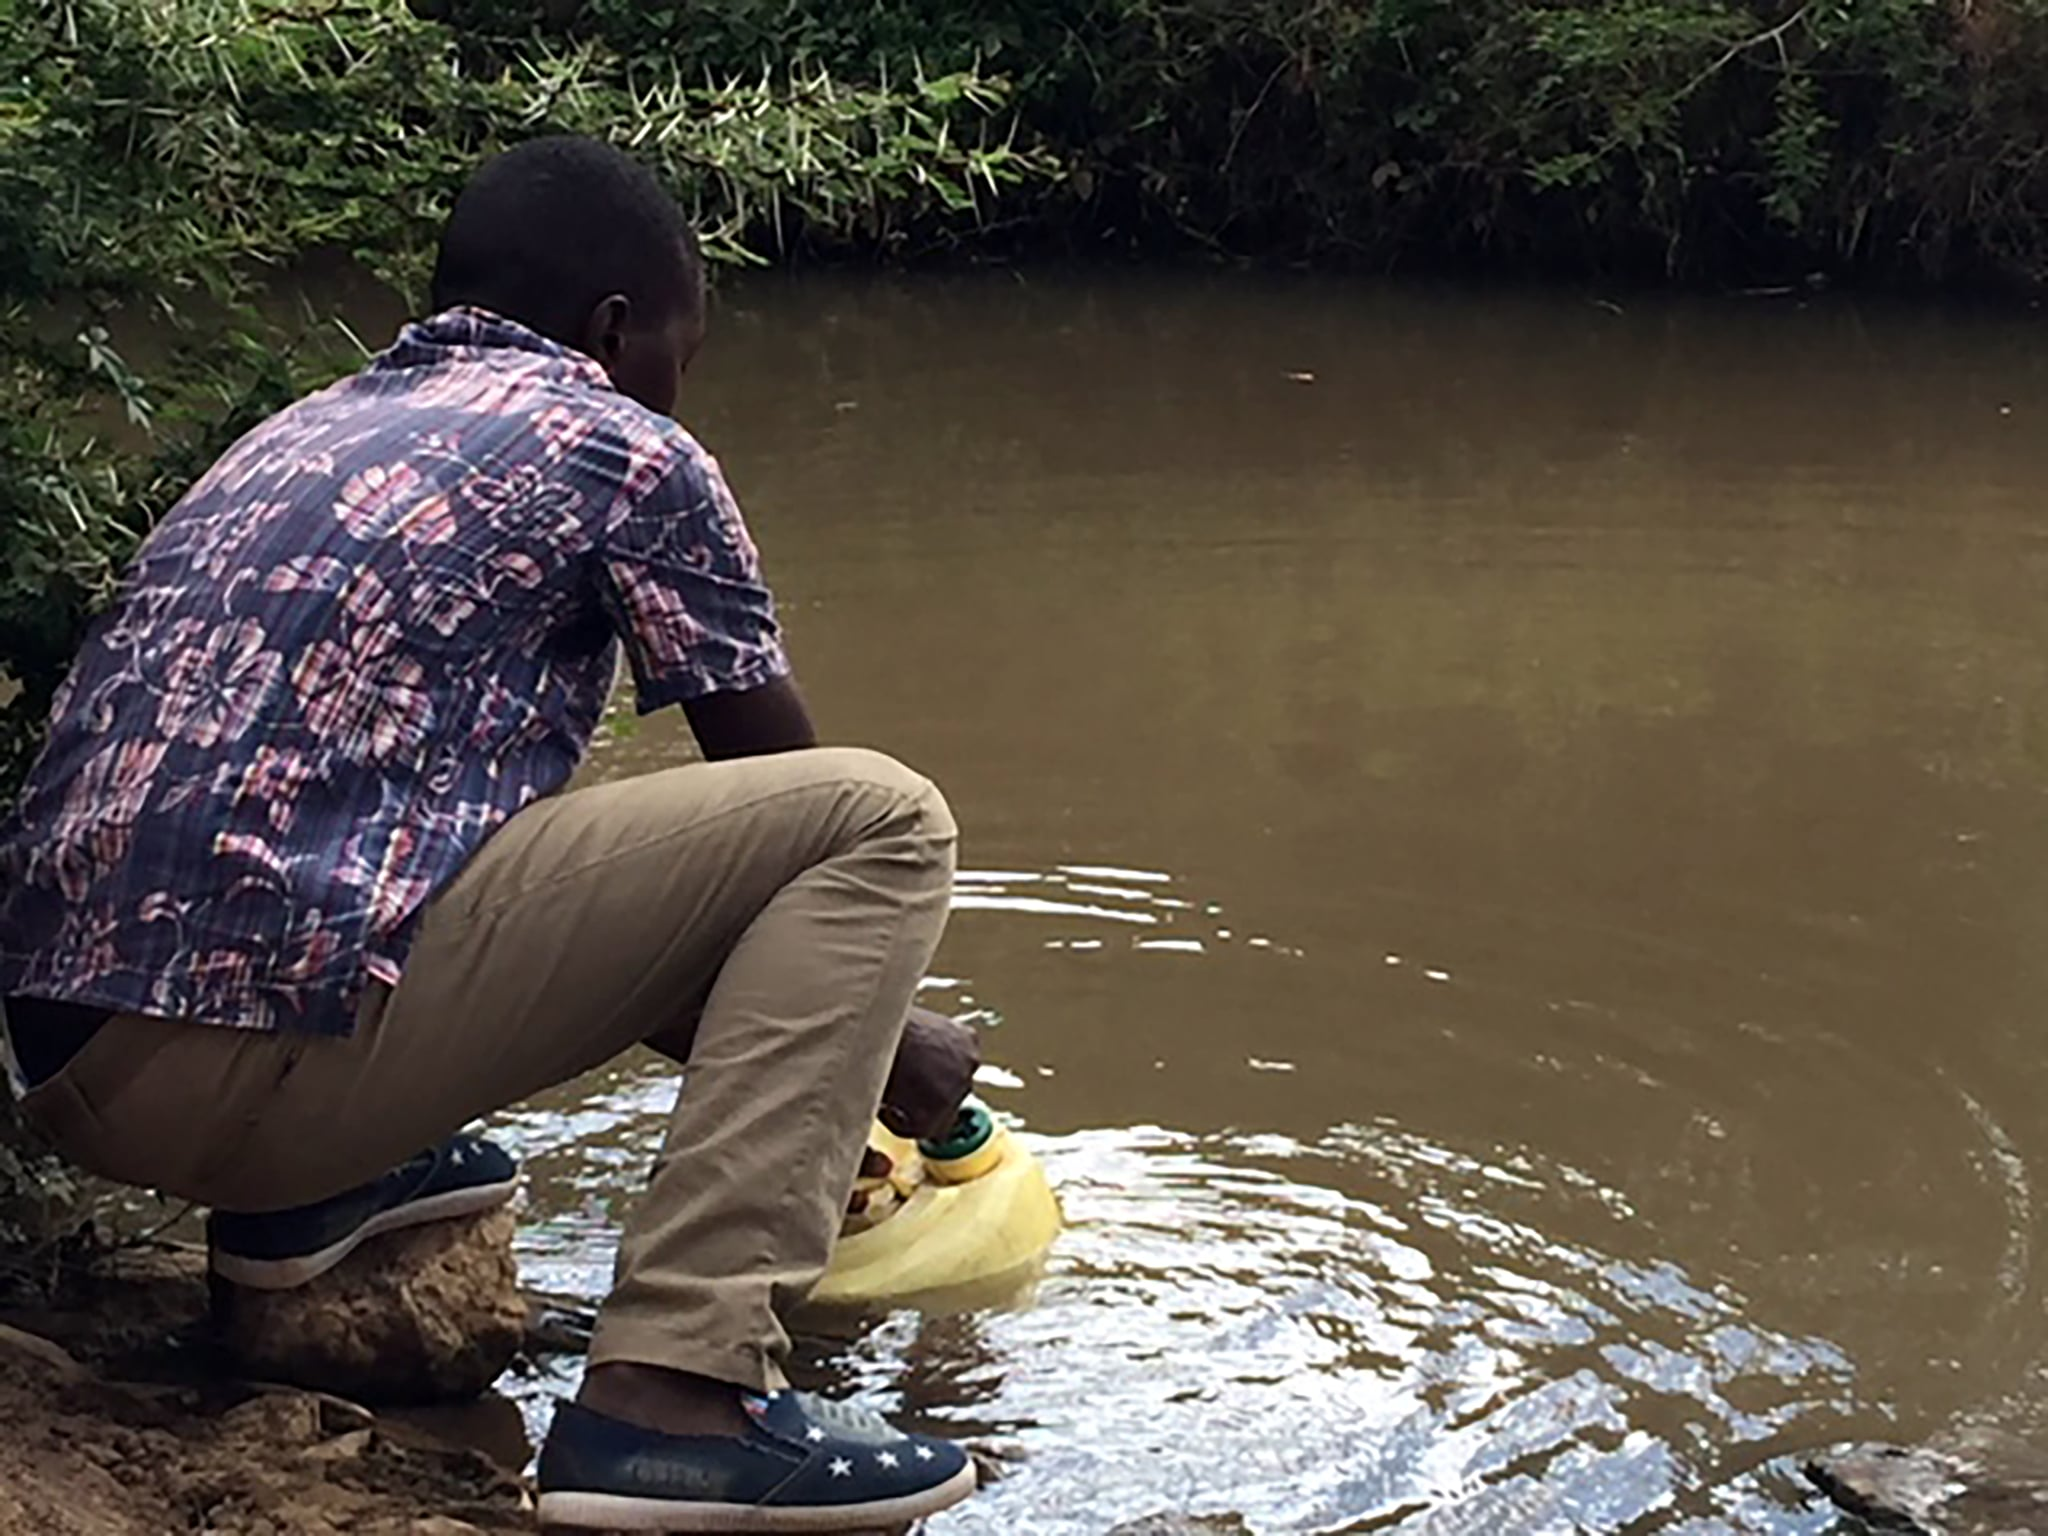 This student is at a local river gathering unclean, bacteria laden water for his family to drink.  Many suffer from typhoid and cholera due to drinking such contaminated water.